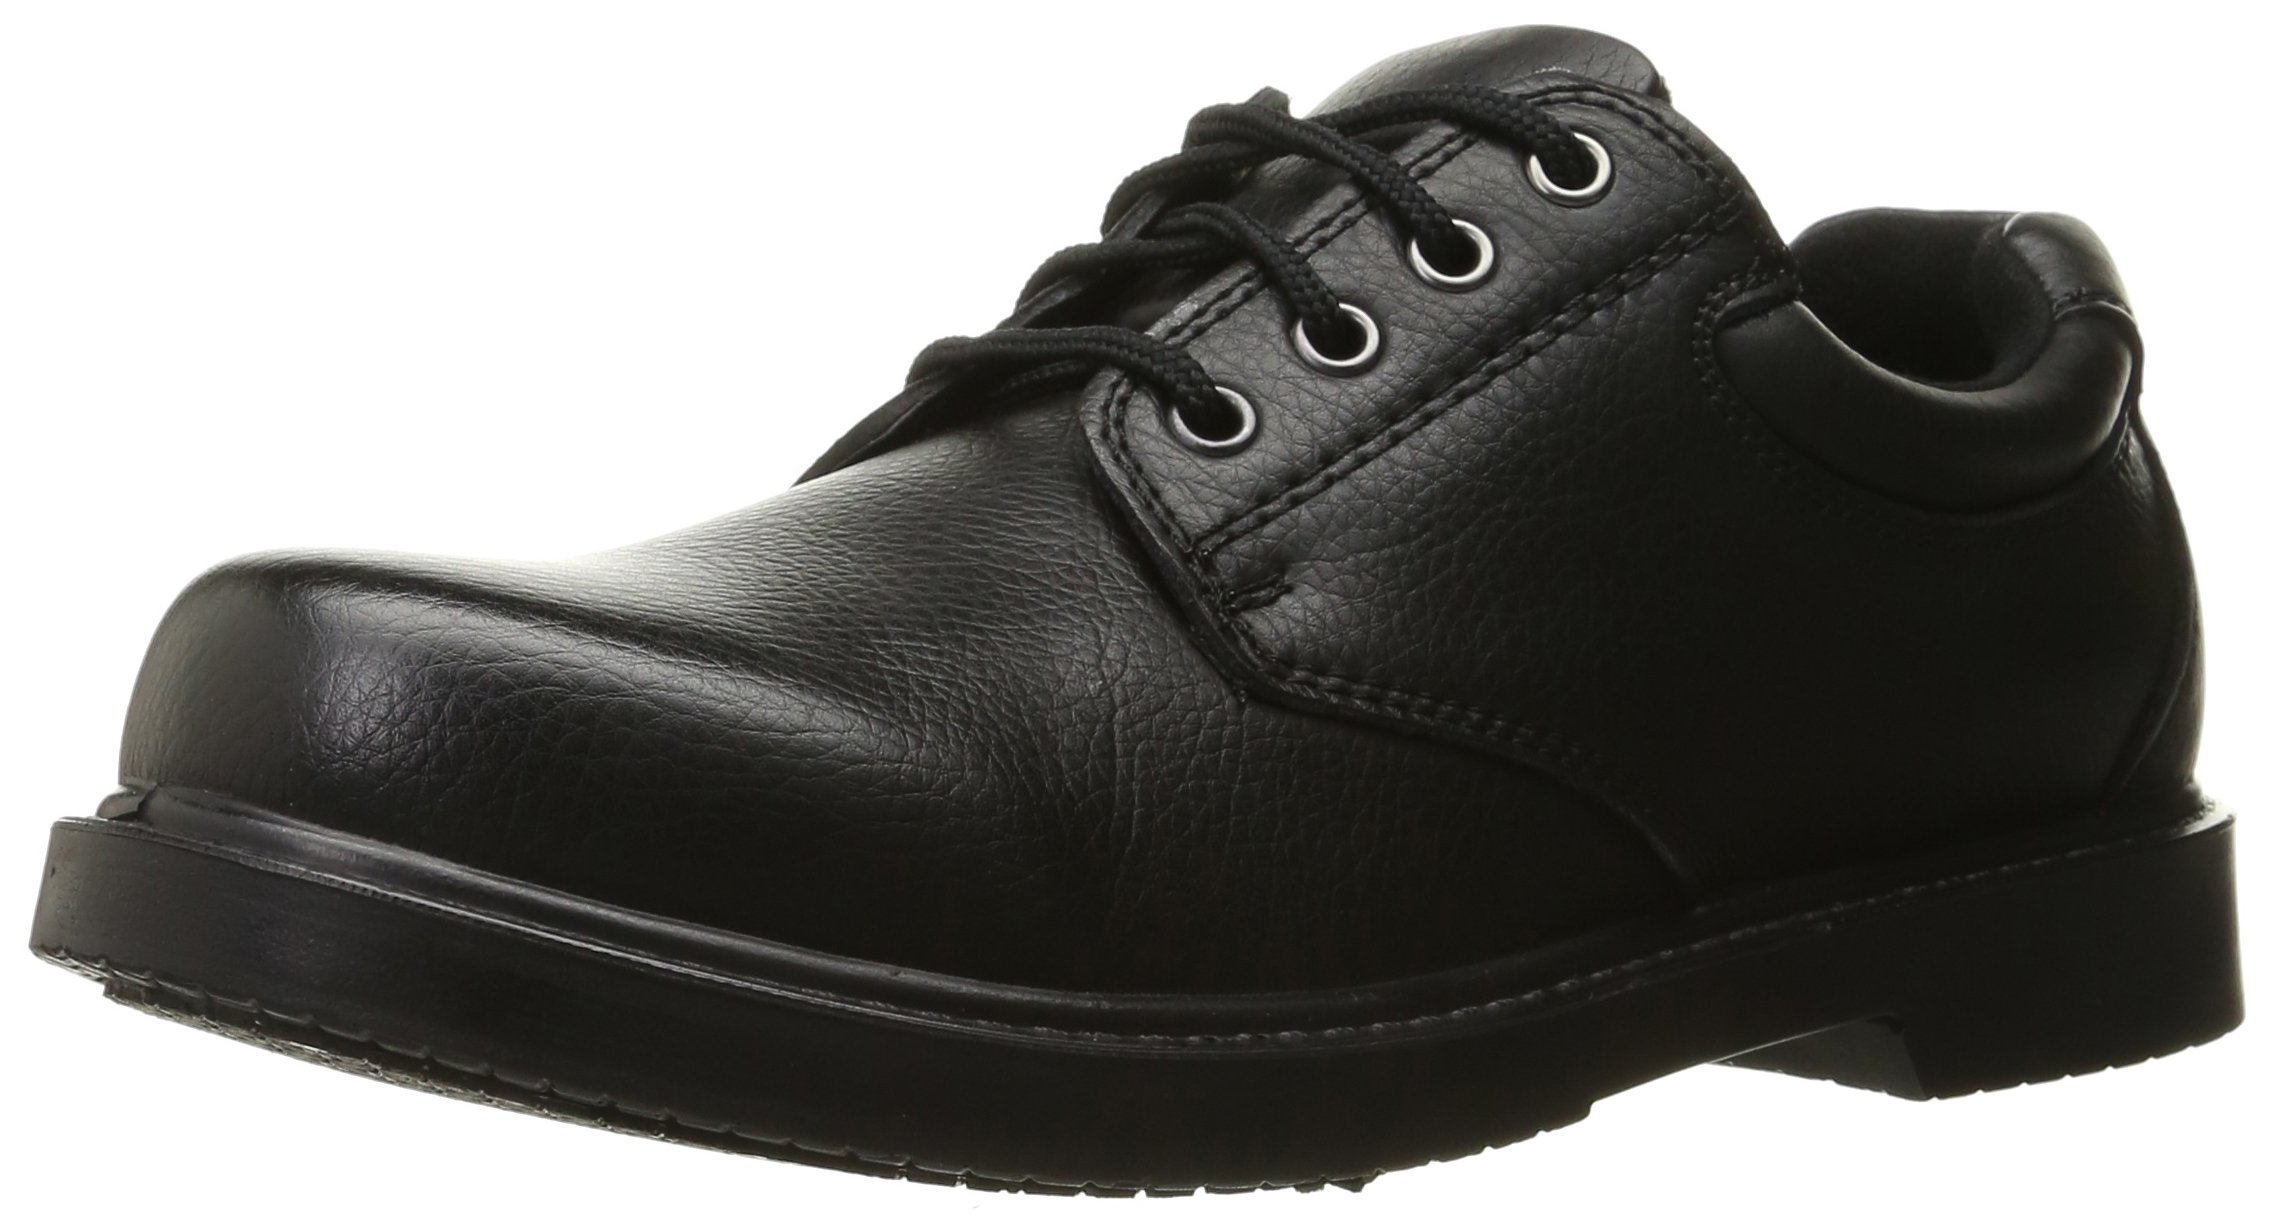 Dr. Scholl's Shoes Men's Dave Uniform Dress Shoe, Black, 13 W US by Dr. Scholl's Shoes